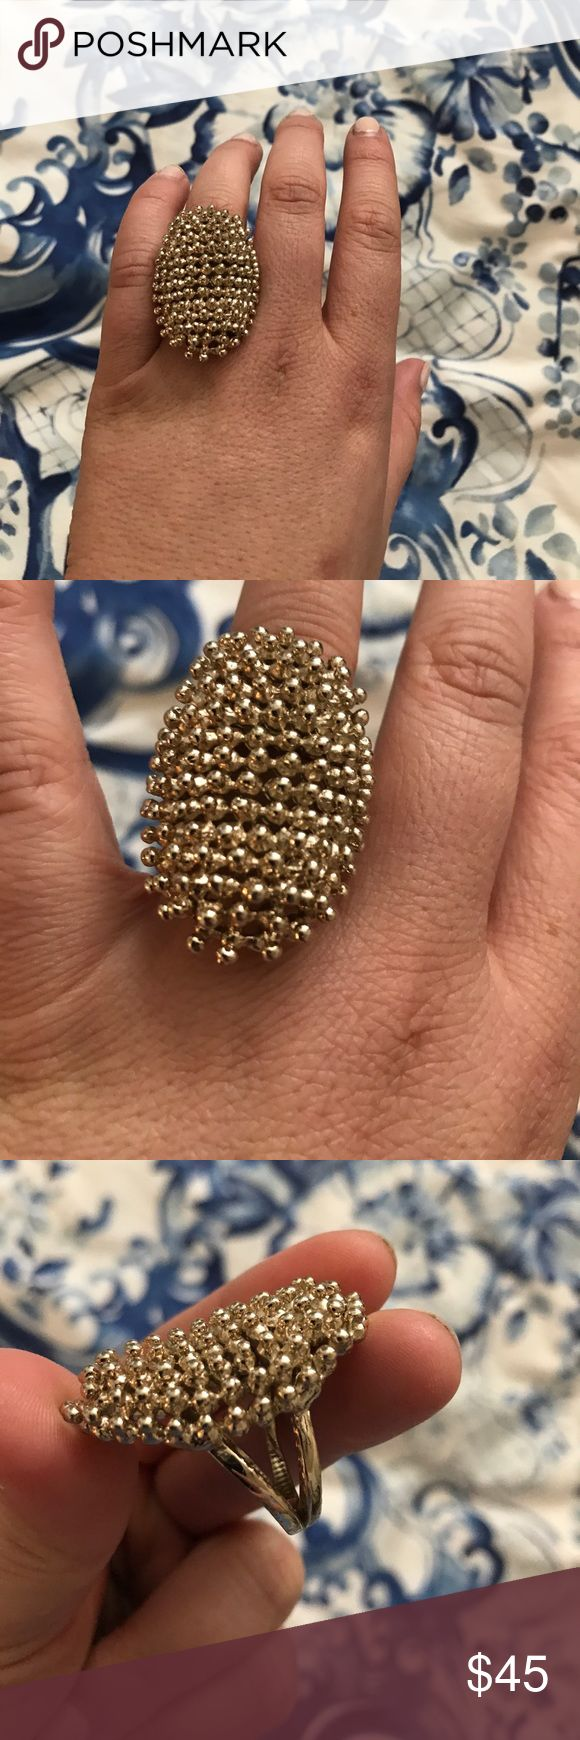 Kendra Scott Ring Knotted point ring 💍 size 7 Kendra Scott Jewelry Rings